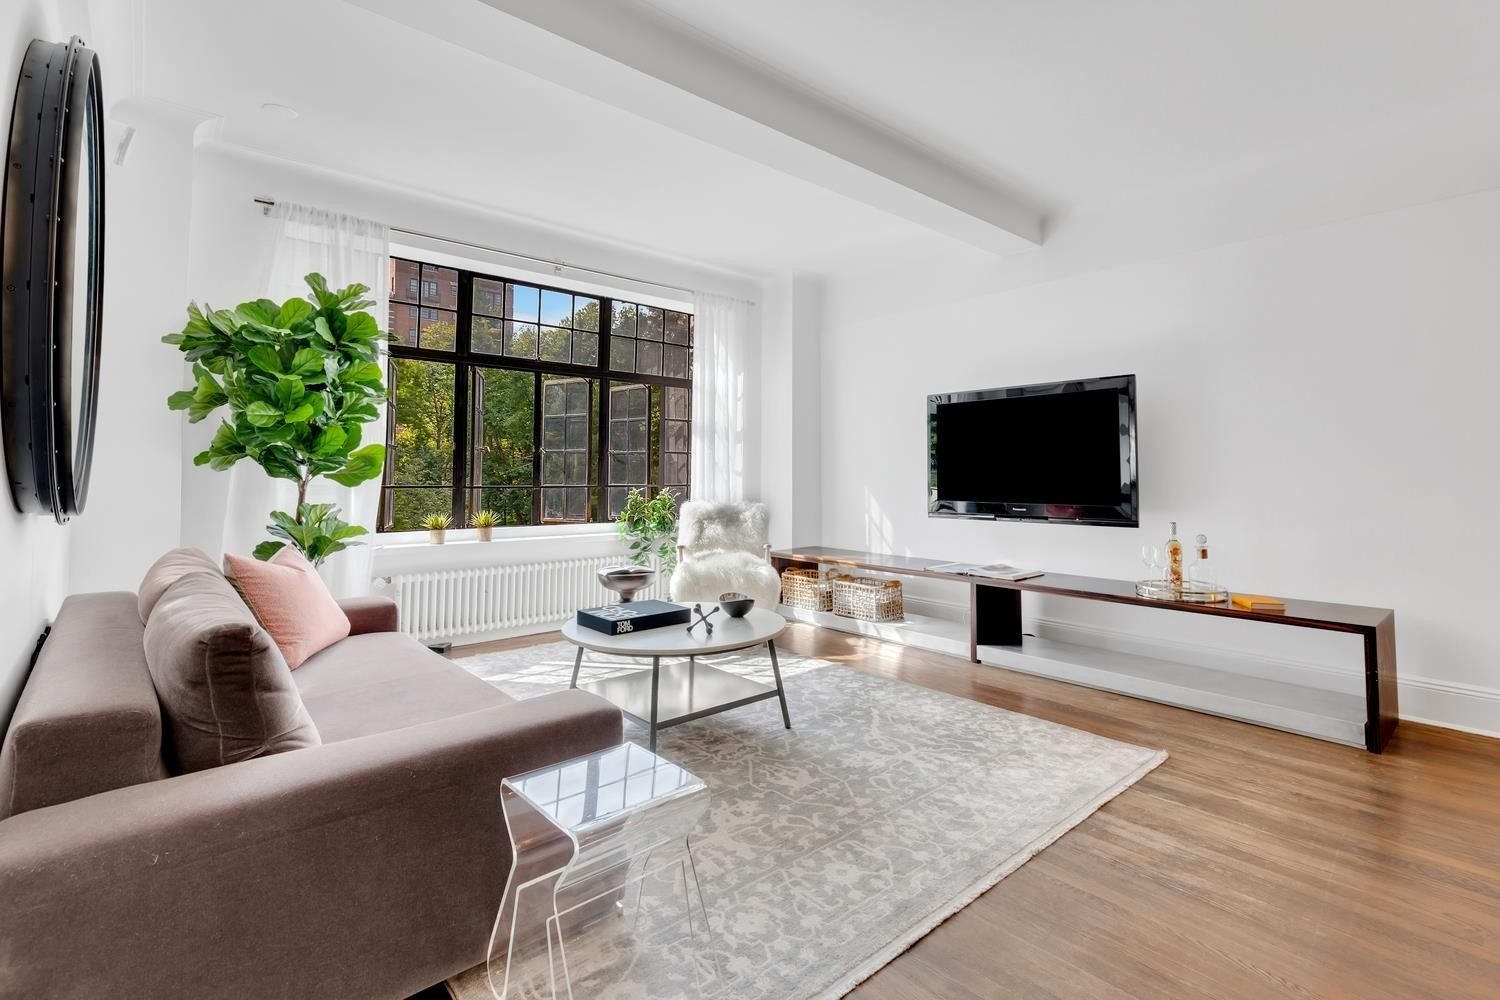 13. Co-op Properties for Sale at GRAMERCY OWNERS LTD, 44 Gramercy Park North, 4C Gramercy Park, New York, NY 10010